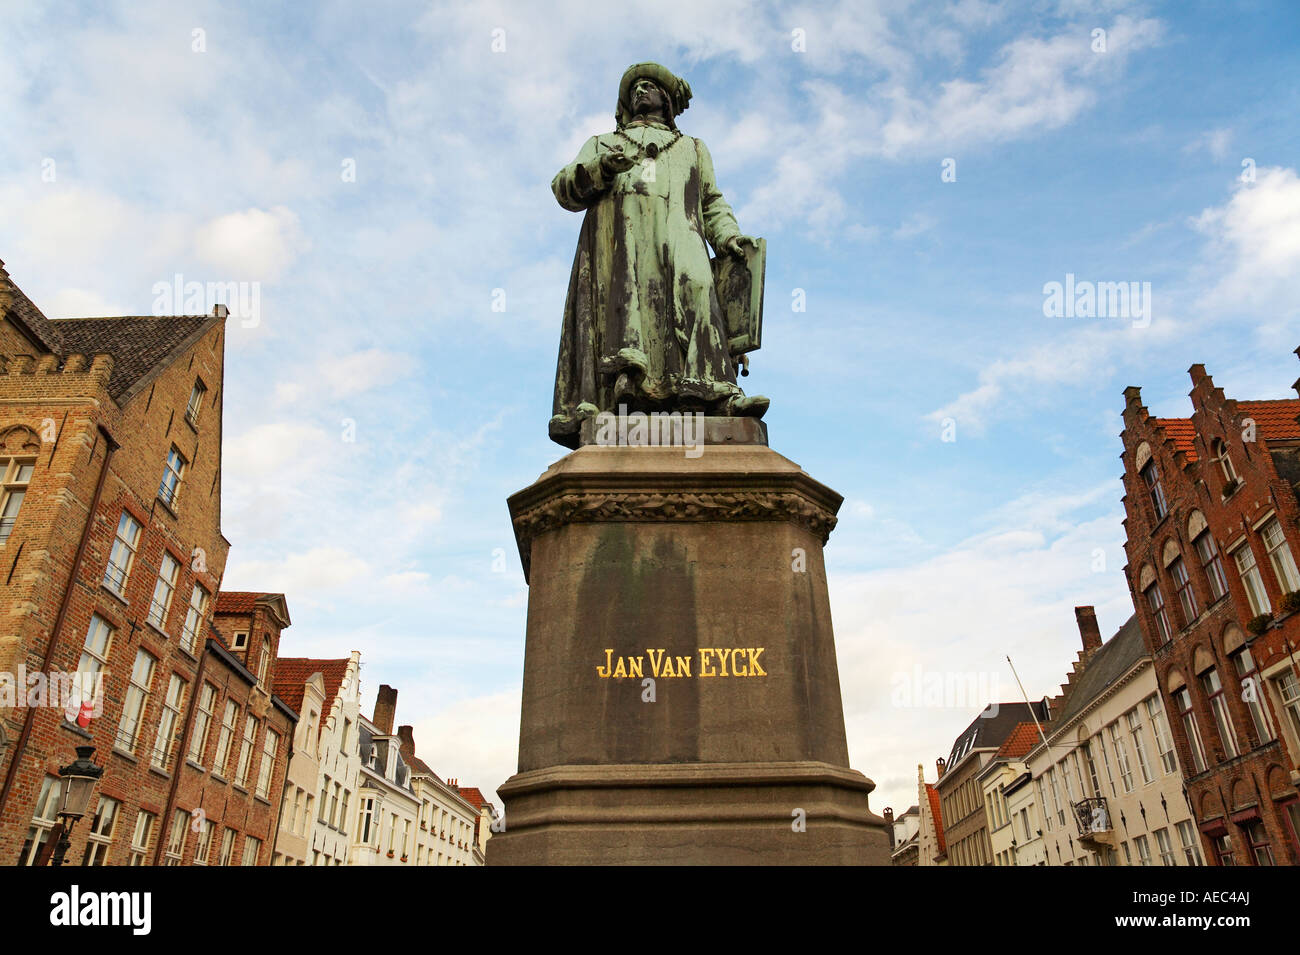 Statue of Jan Van Eyck 1390 1441 a flemish artist with typical buildings in background Bruges Belgium Stock Photo